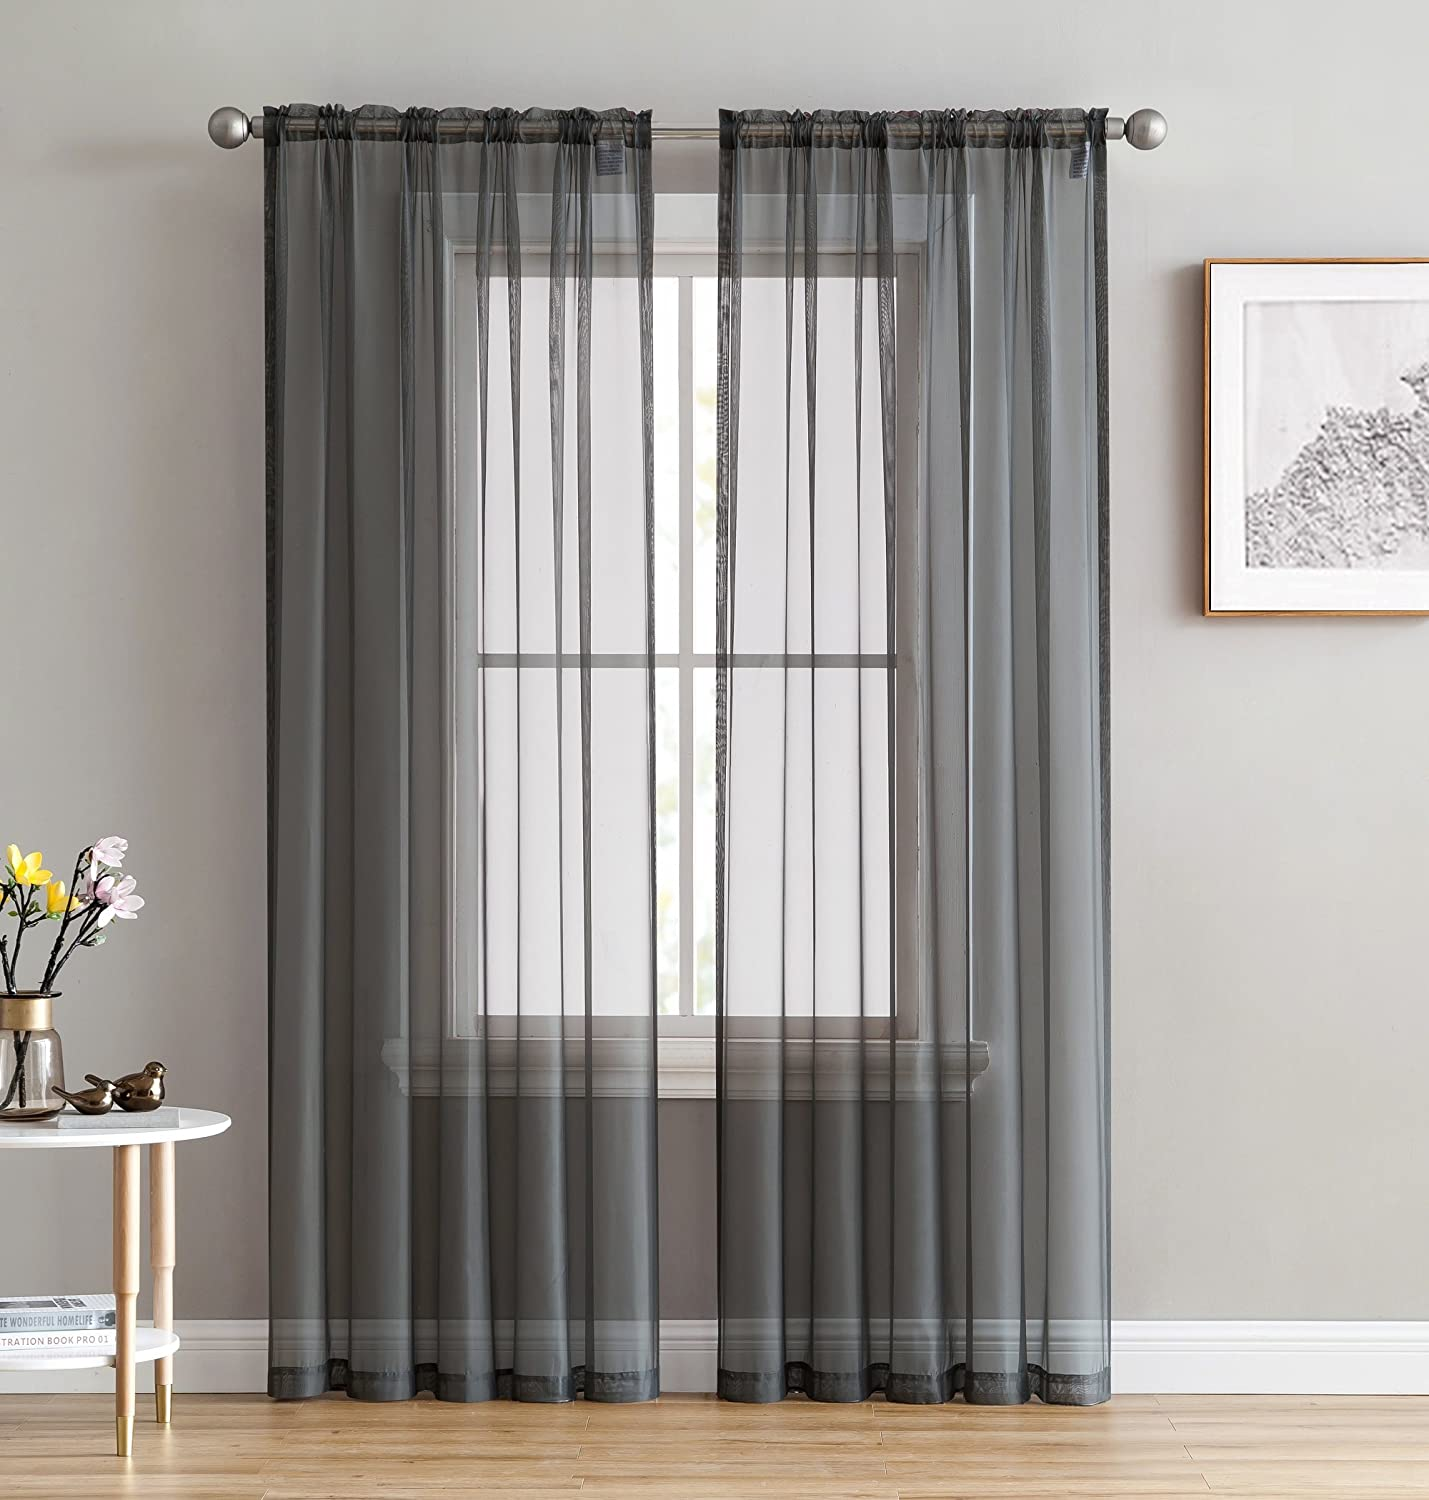 curtains grommet voile ma brylanehome curtain brylane studio decor sheer